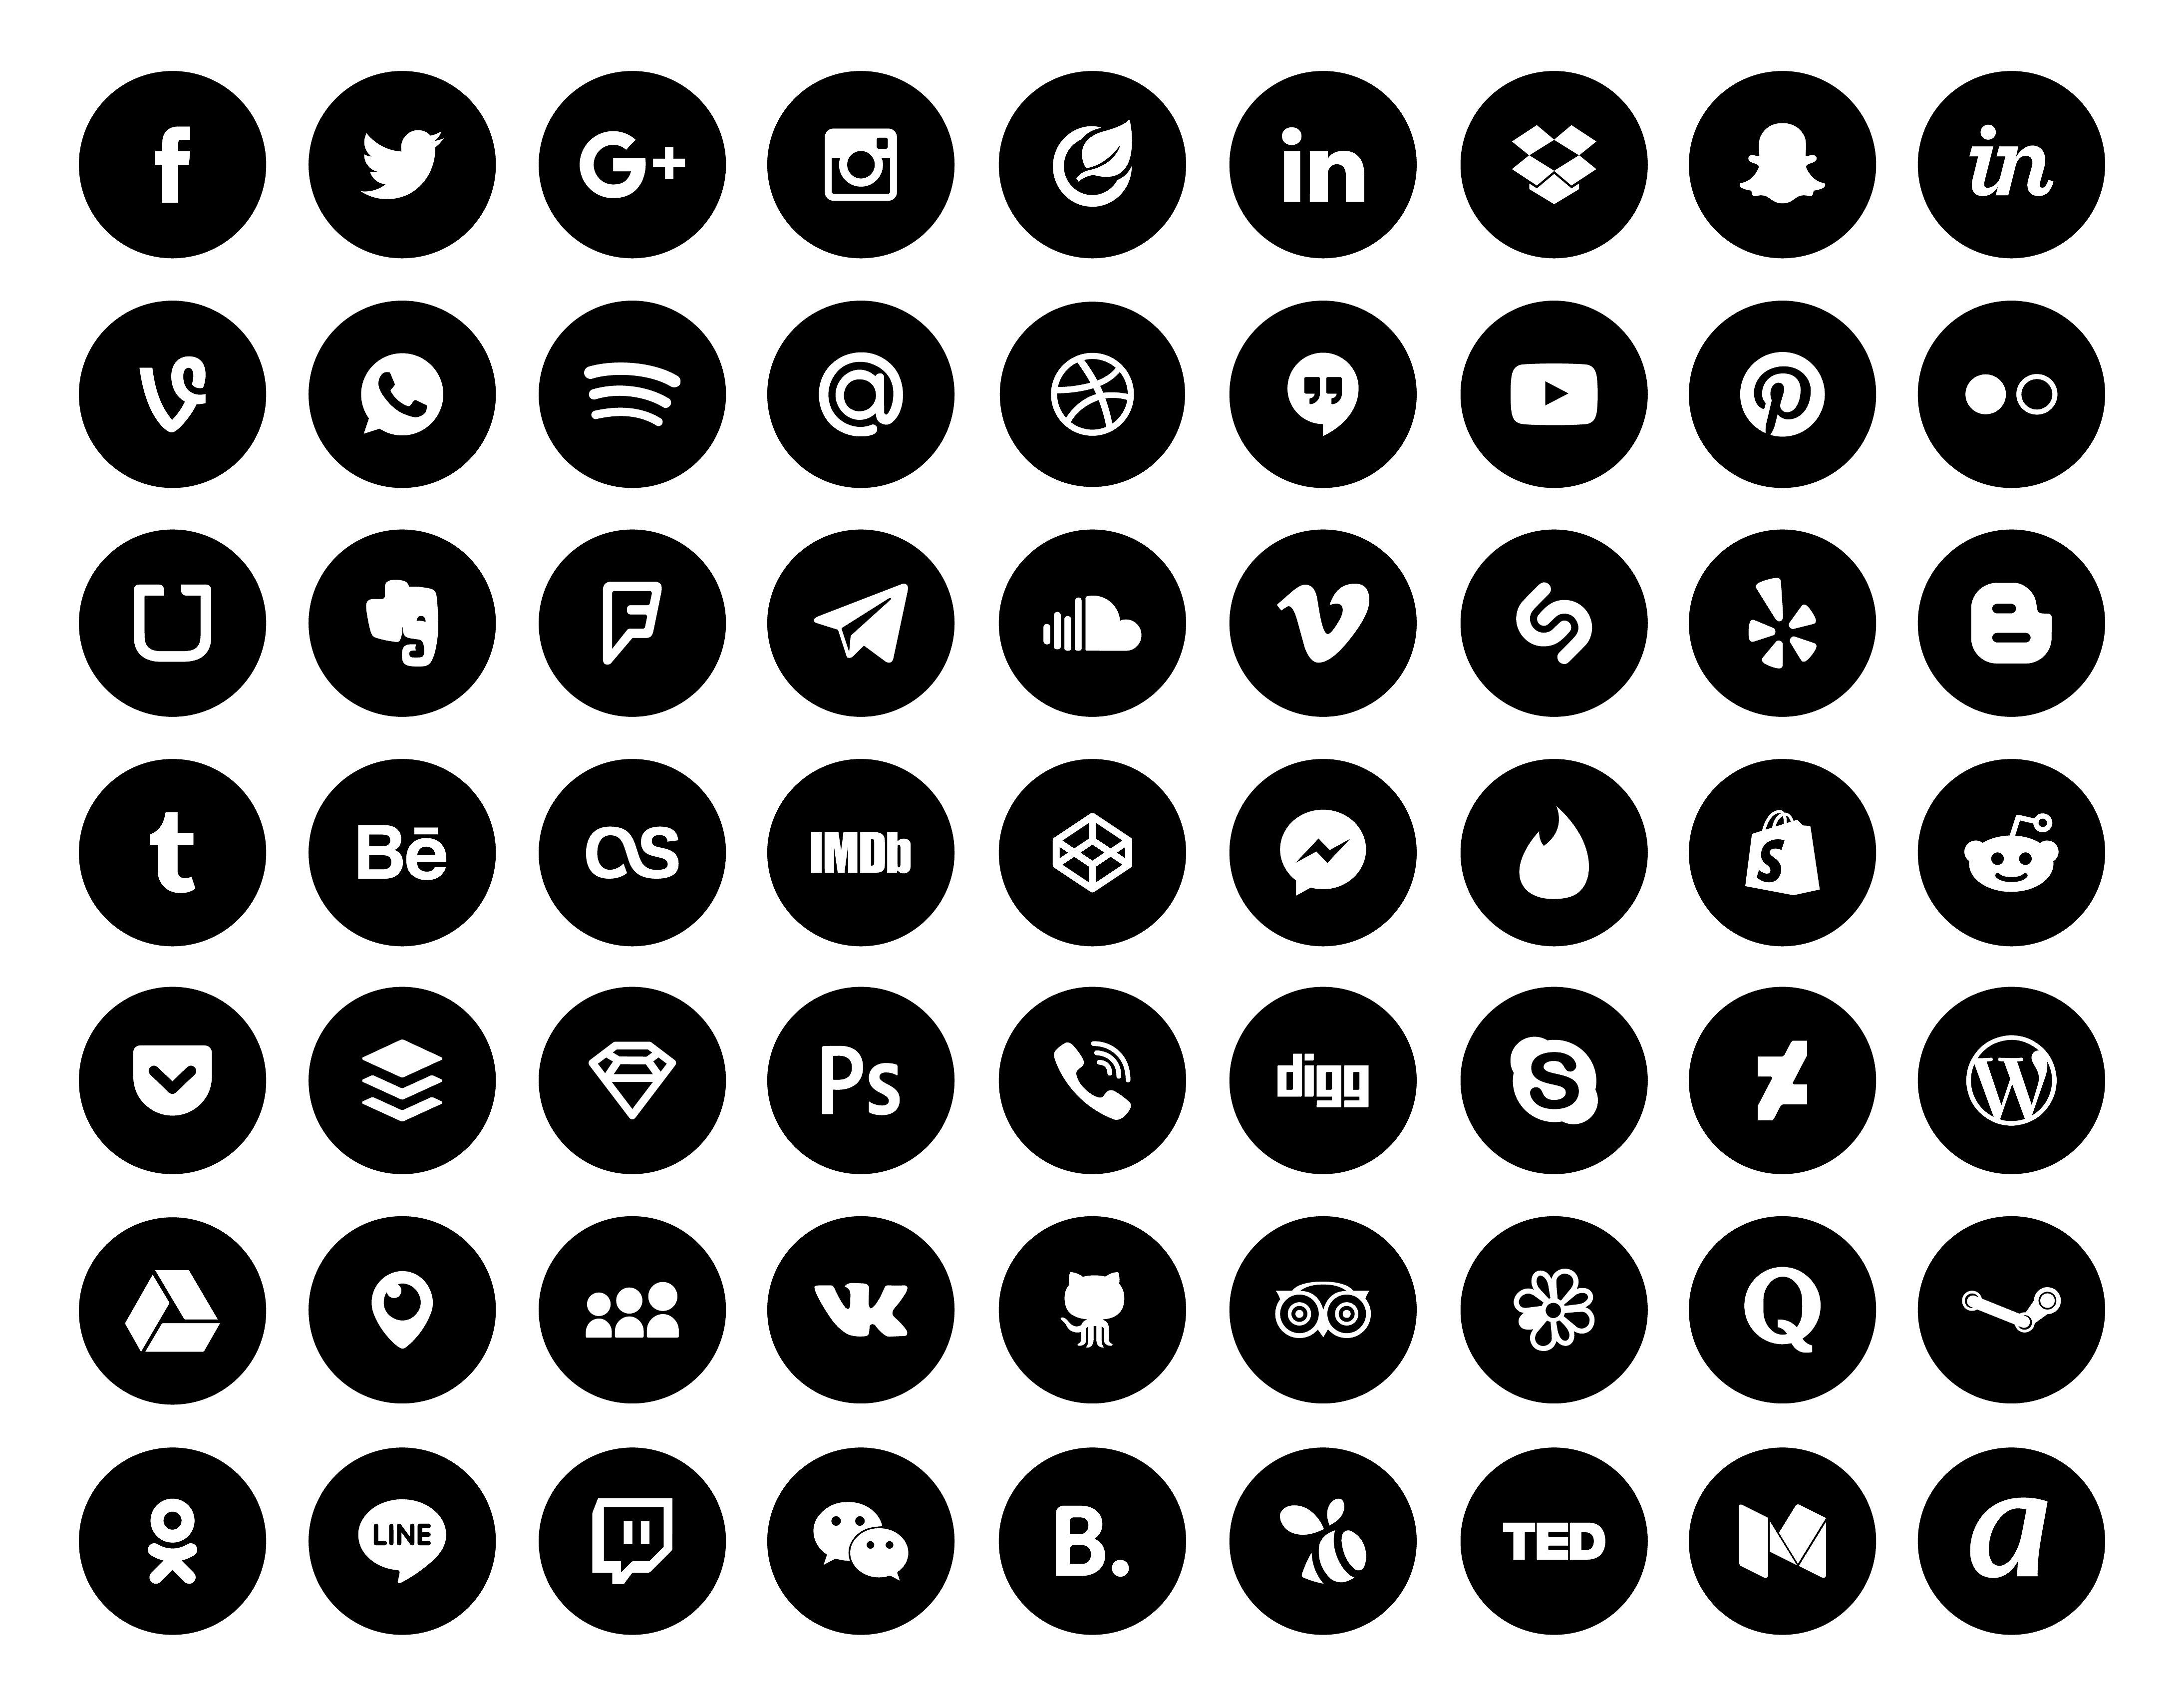 Aesthetic Black Ios 14 App Icons Pack 108 Icons 1 Color Etsy Black App App Icon App Store Icon